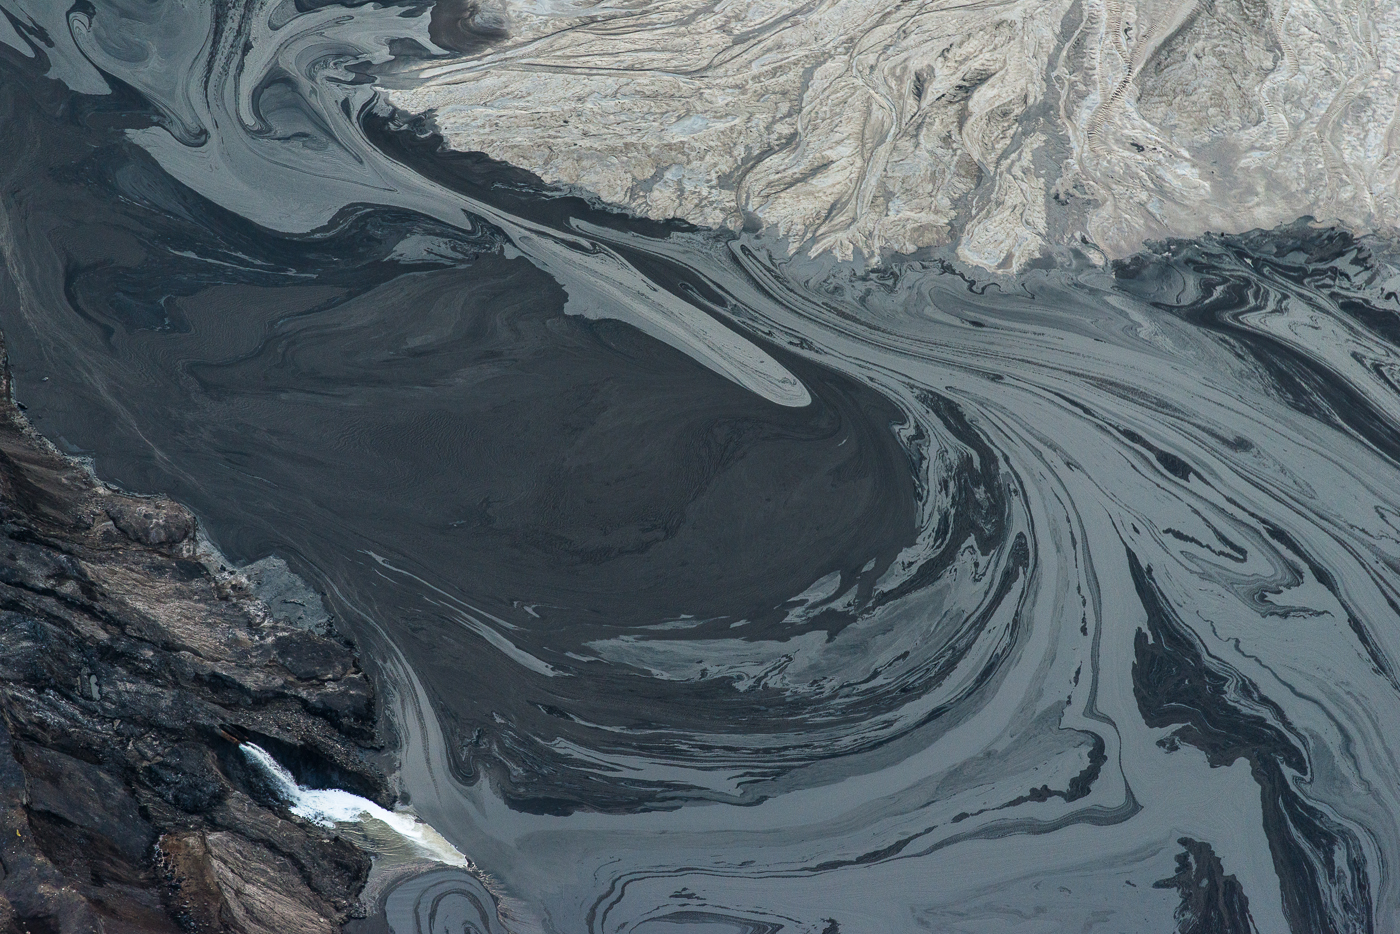 Effluent pipe and tailings pond. Alberta tar sands.